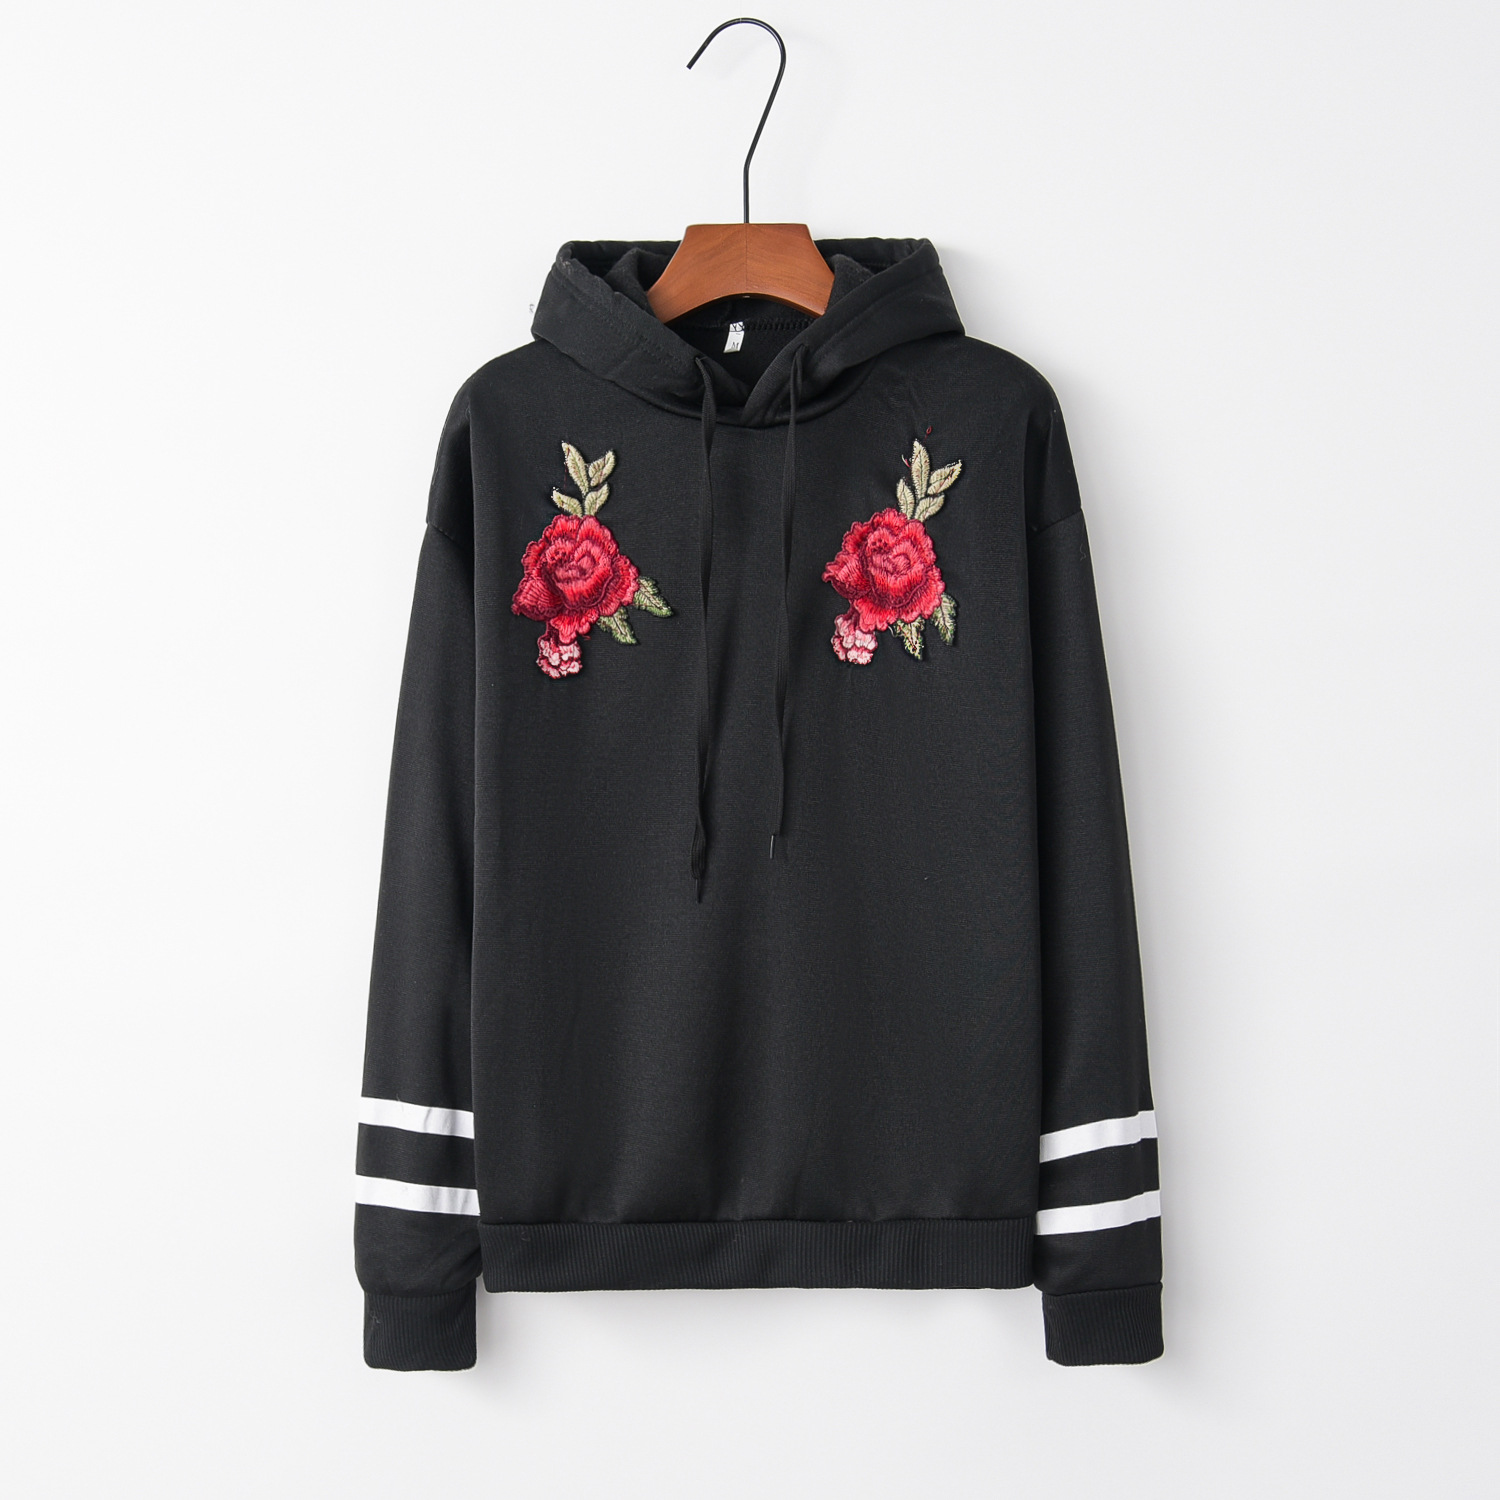 Two Rings And Flower 2020 New Design Hot Sale Hoodies Sweatshirts Women Casual Kawaii Harajuku Sweat Girls European Tops Korean